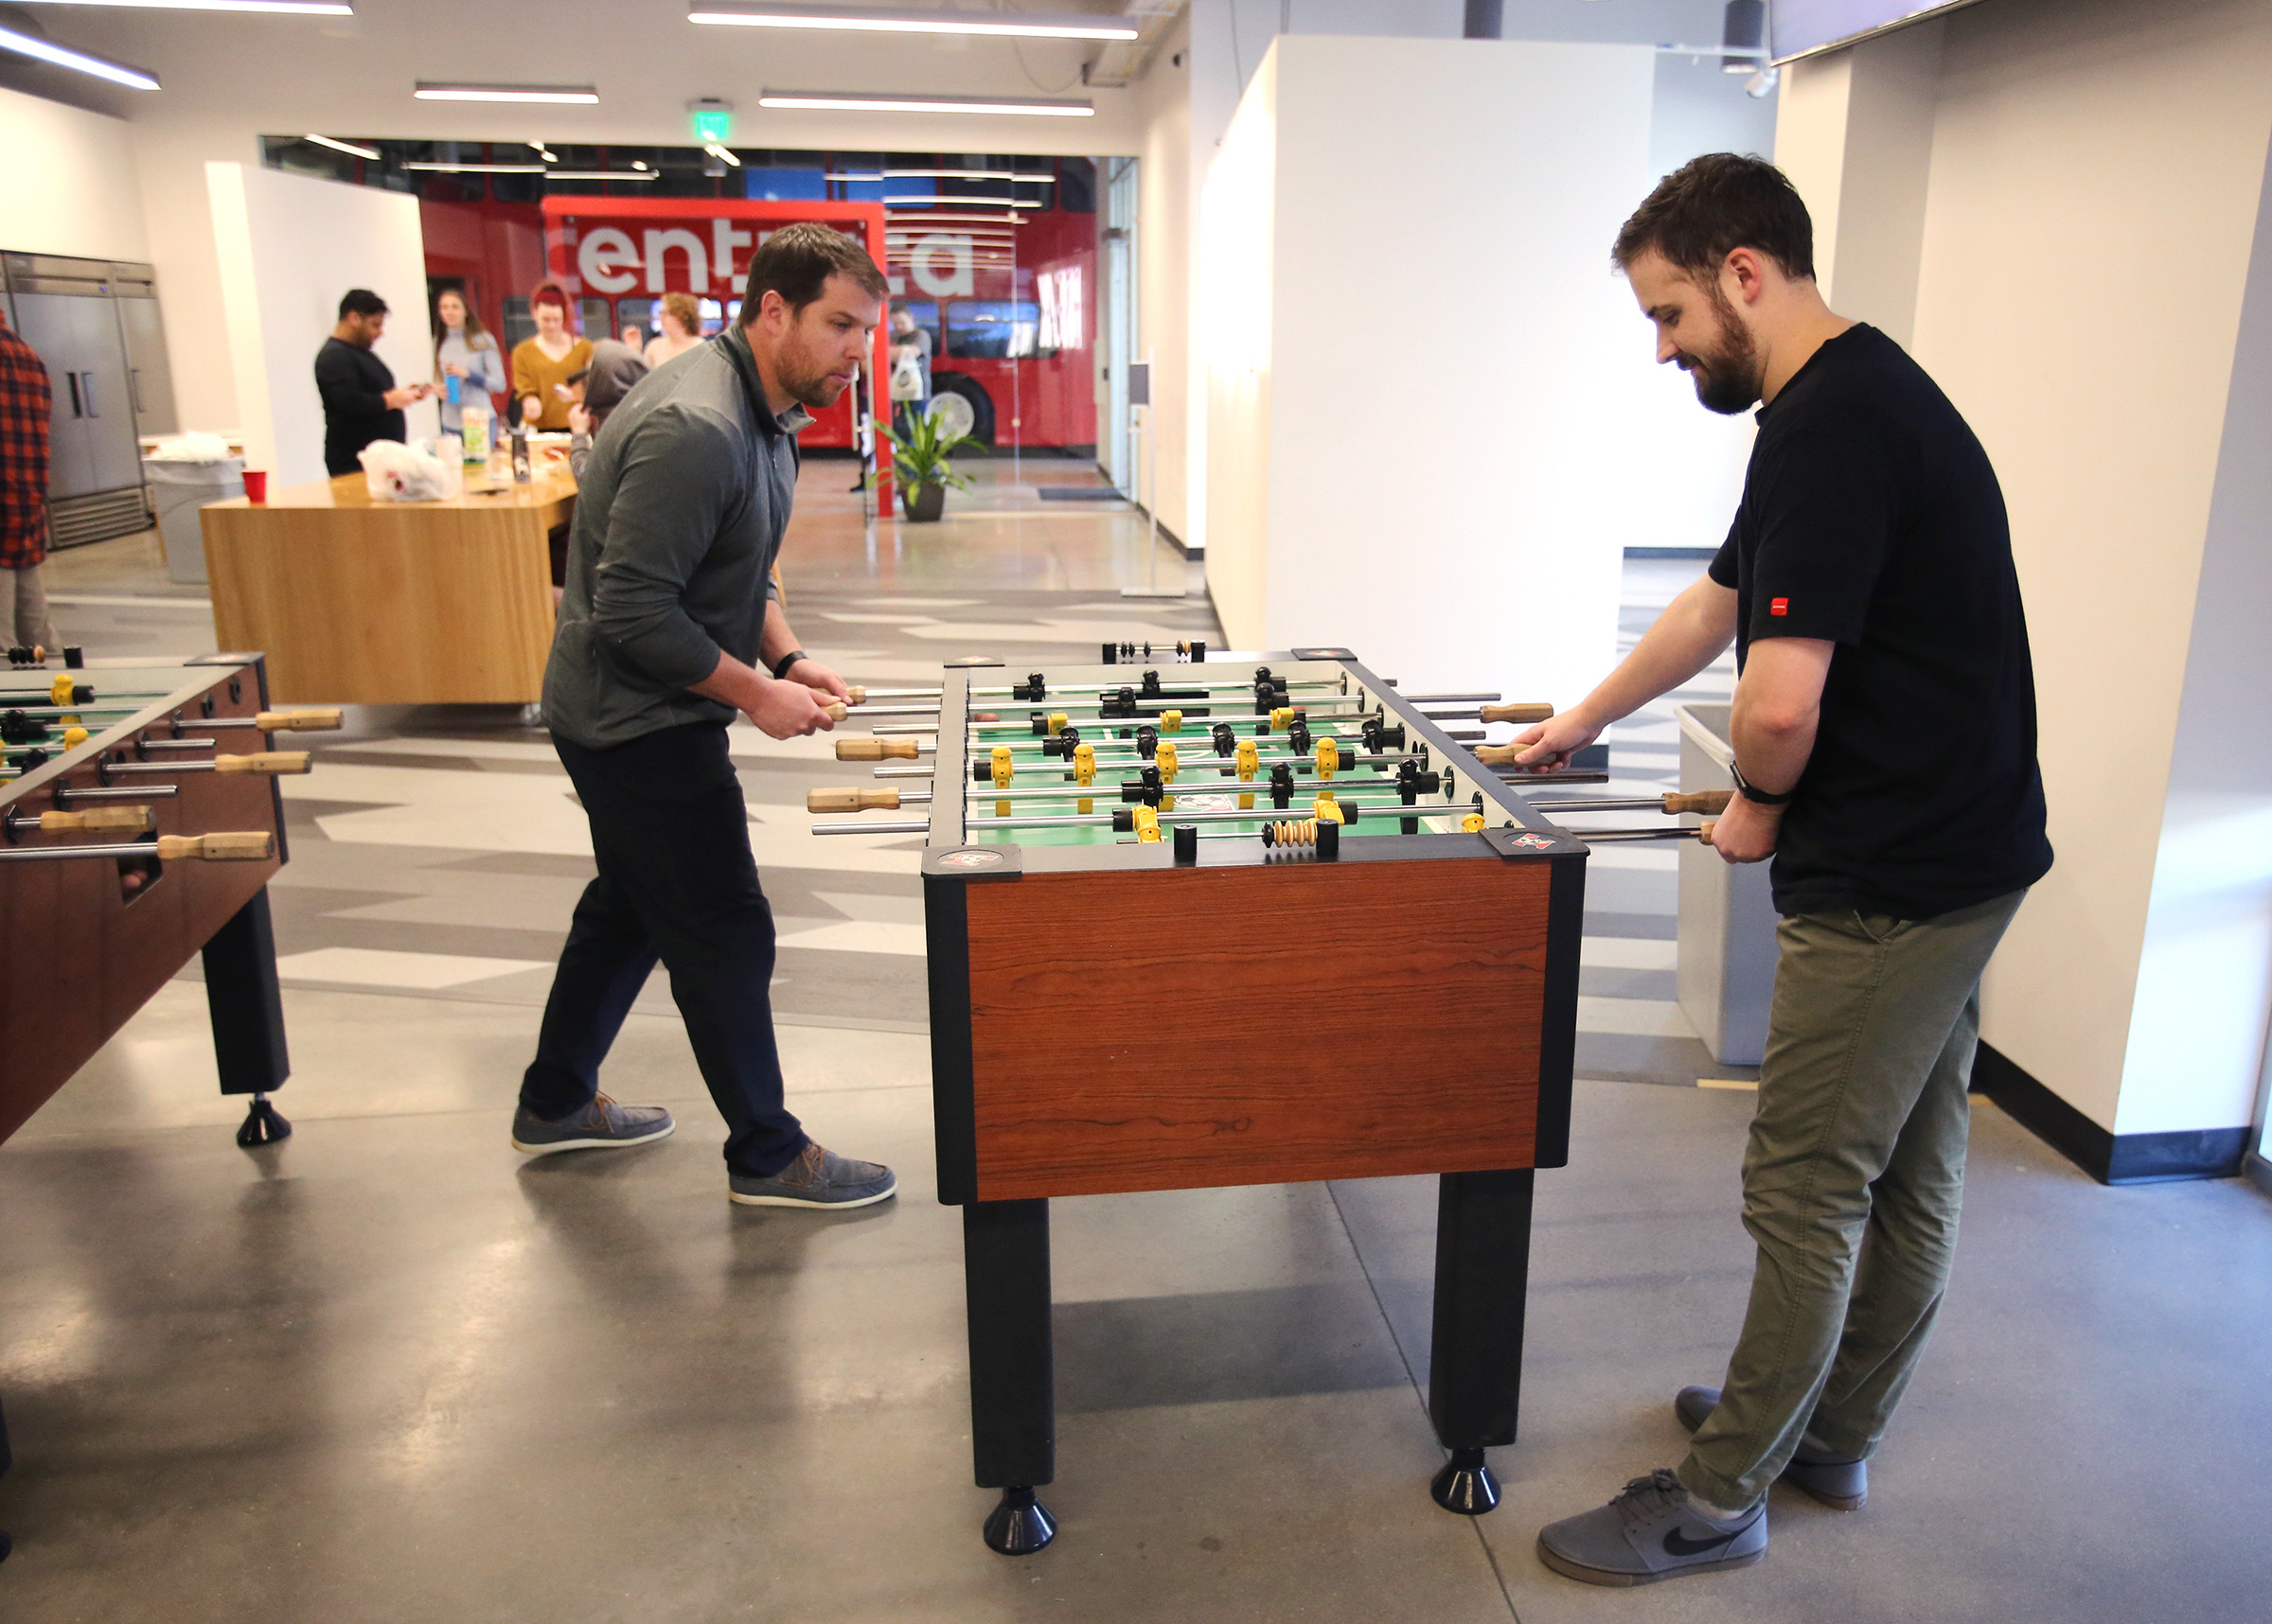 Coby Rich, vice president of marketing at Entrata, and Nate Mathis, public relations manager, play foosball in the company's break/lunch room in the Lehi on Tuesday, Feb. 25, 2020.